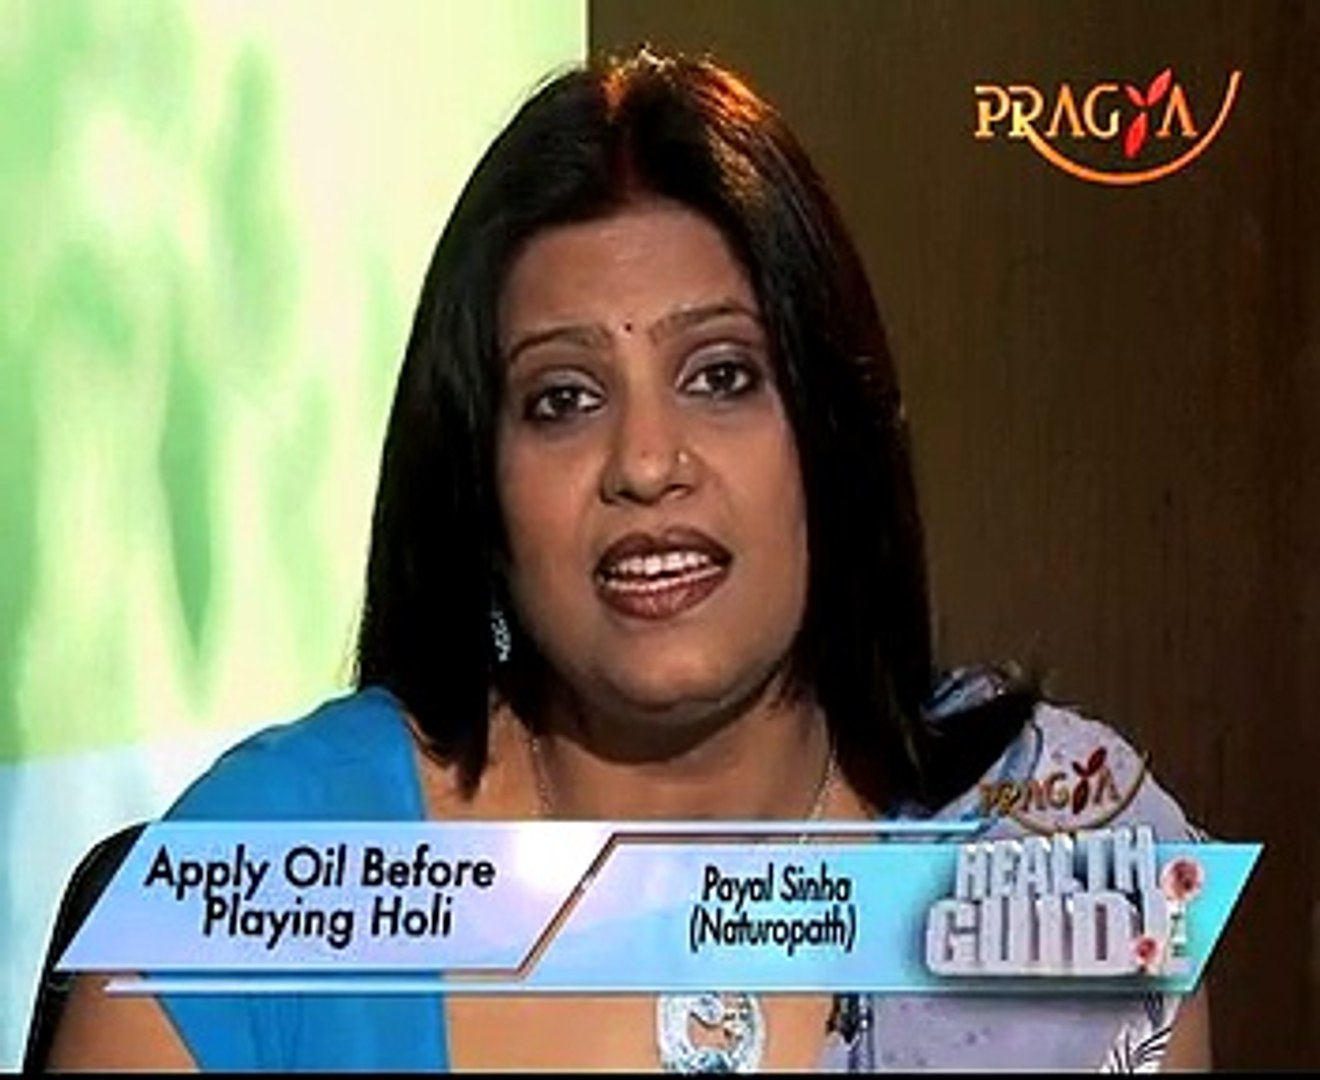 Essential Hair,Skincare Tips For A Safe Holi -Dr. Payal Sinha(Naturopath  Expert)